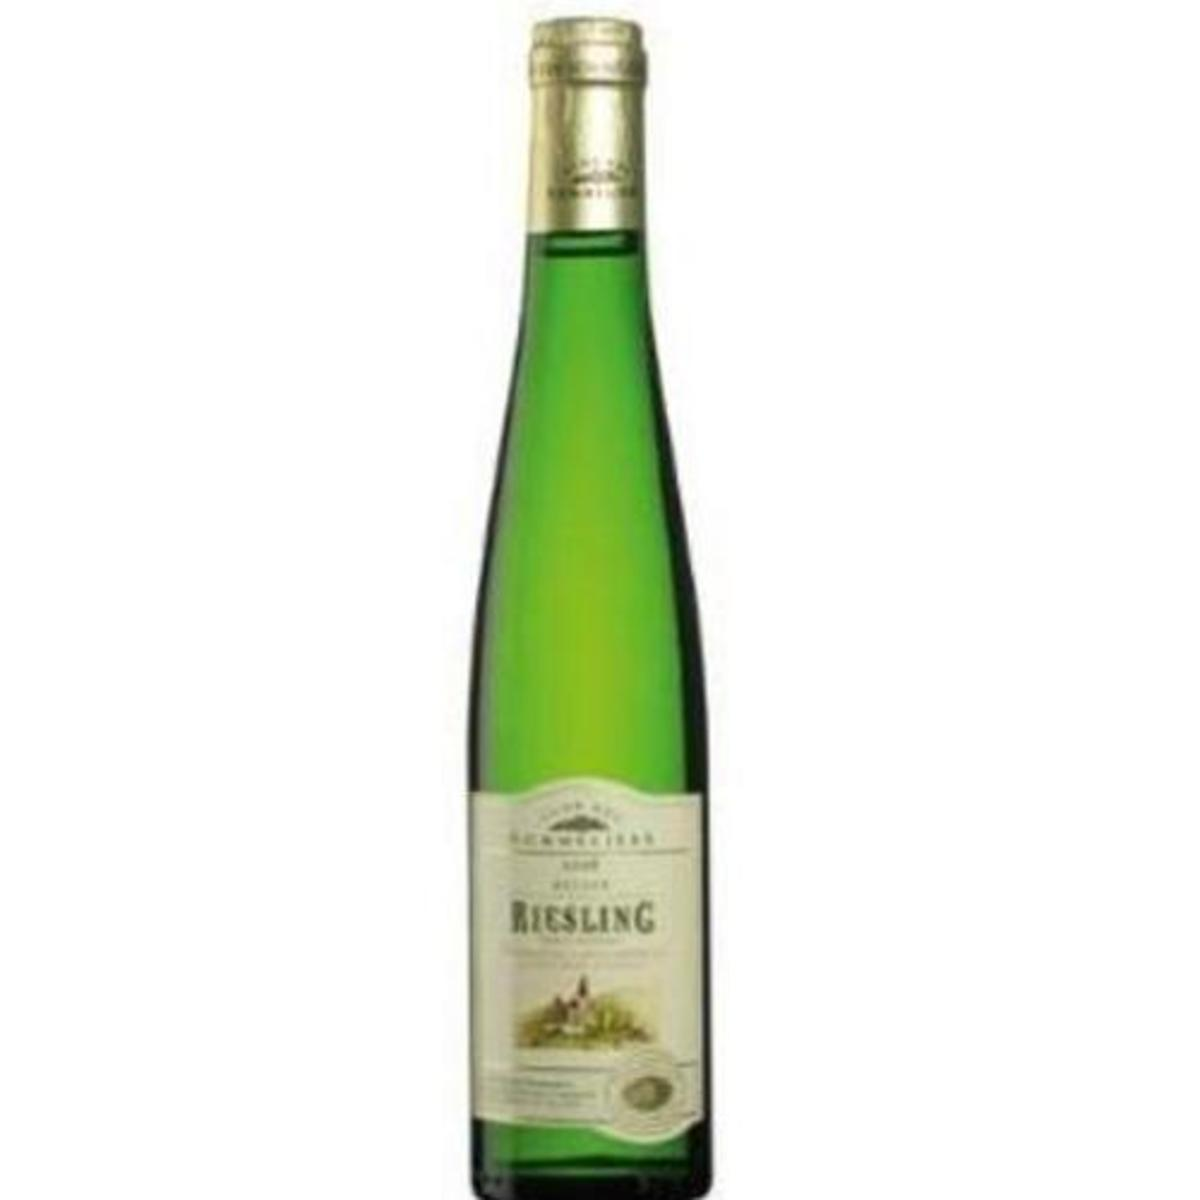 Direct from France - Alsace Riesling Wine Club Des Sommeliers (375ml)